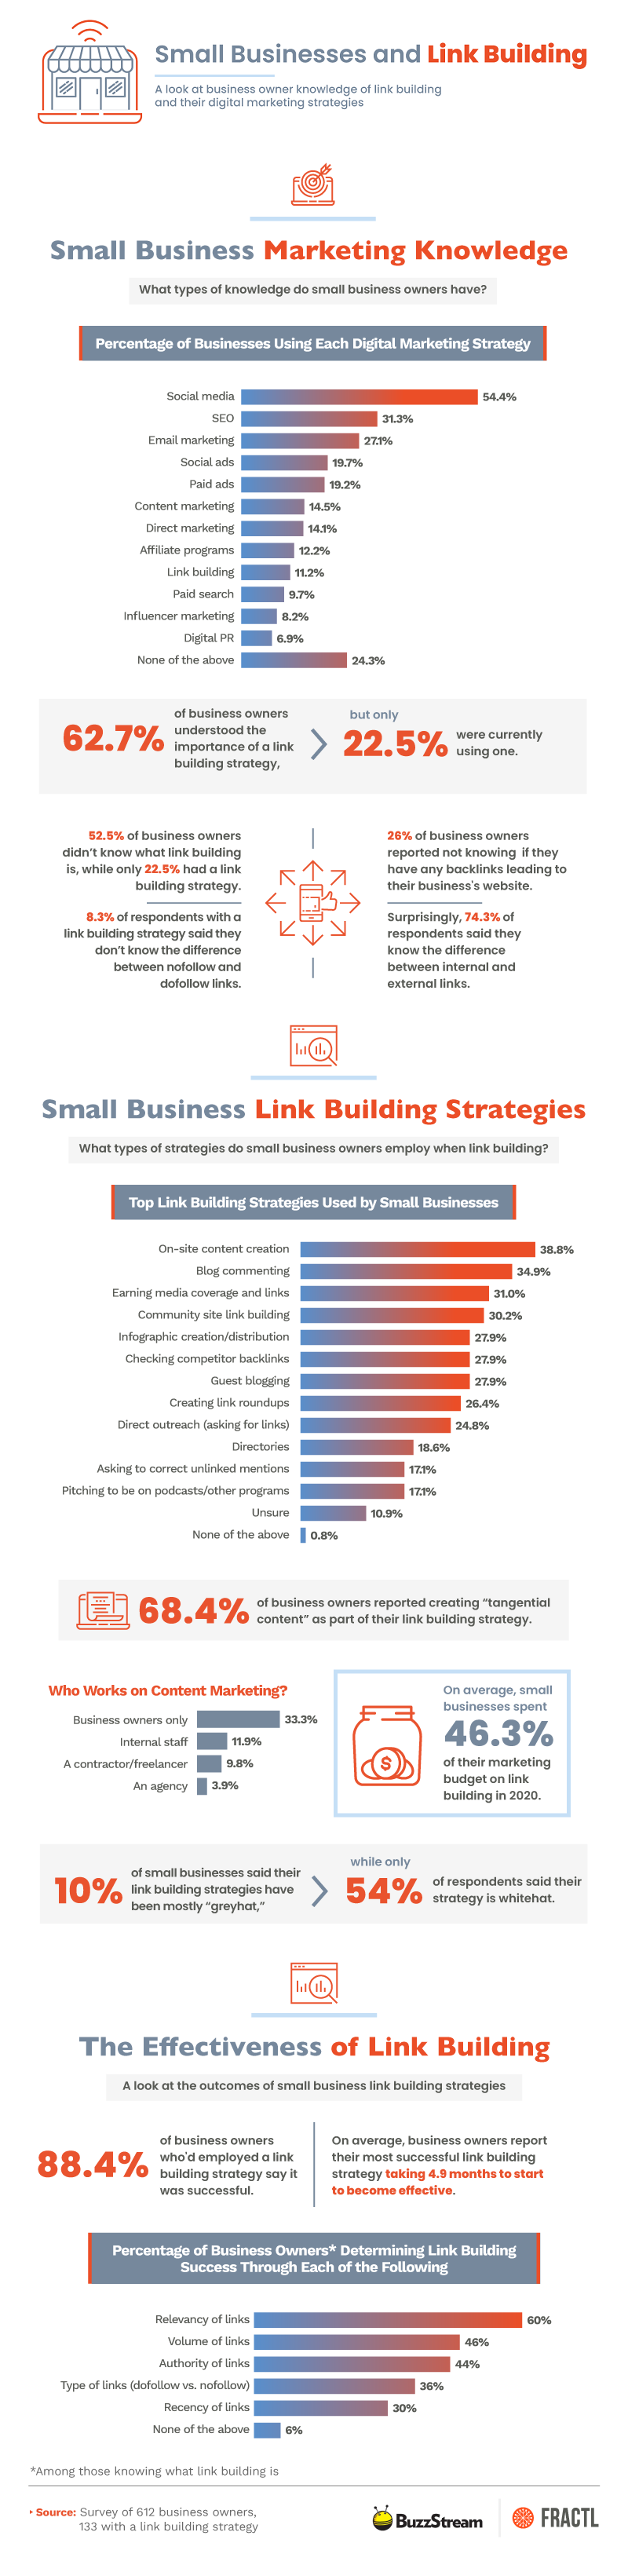 Small business link building research